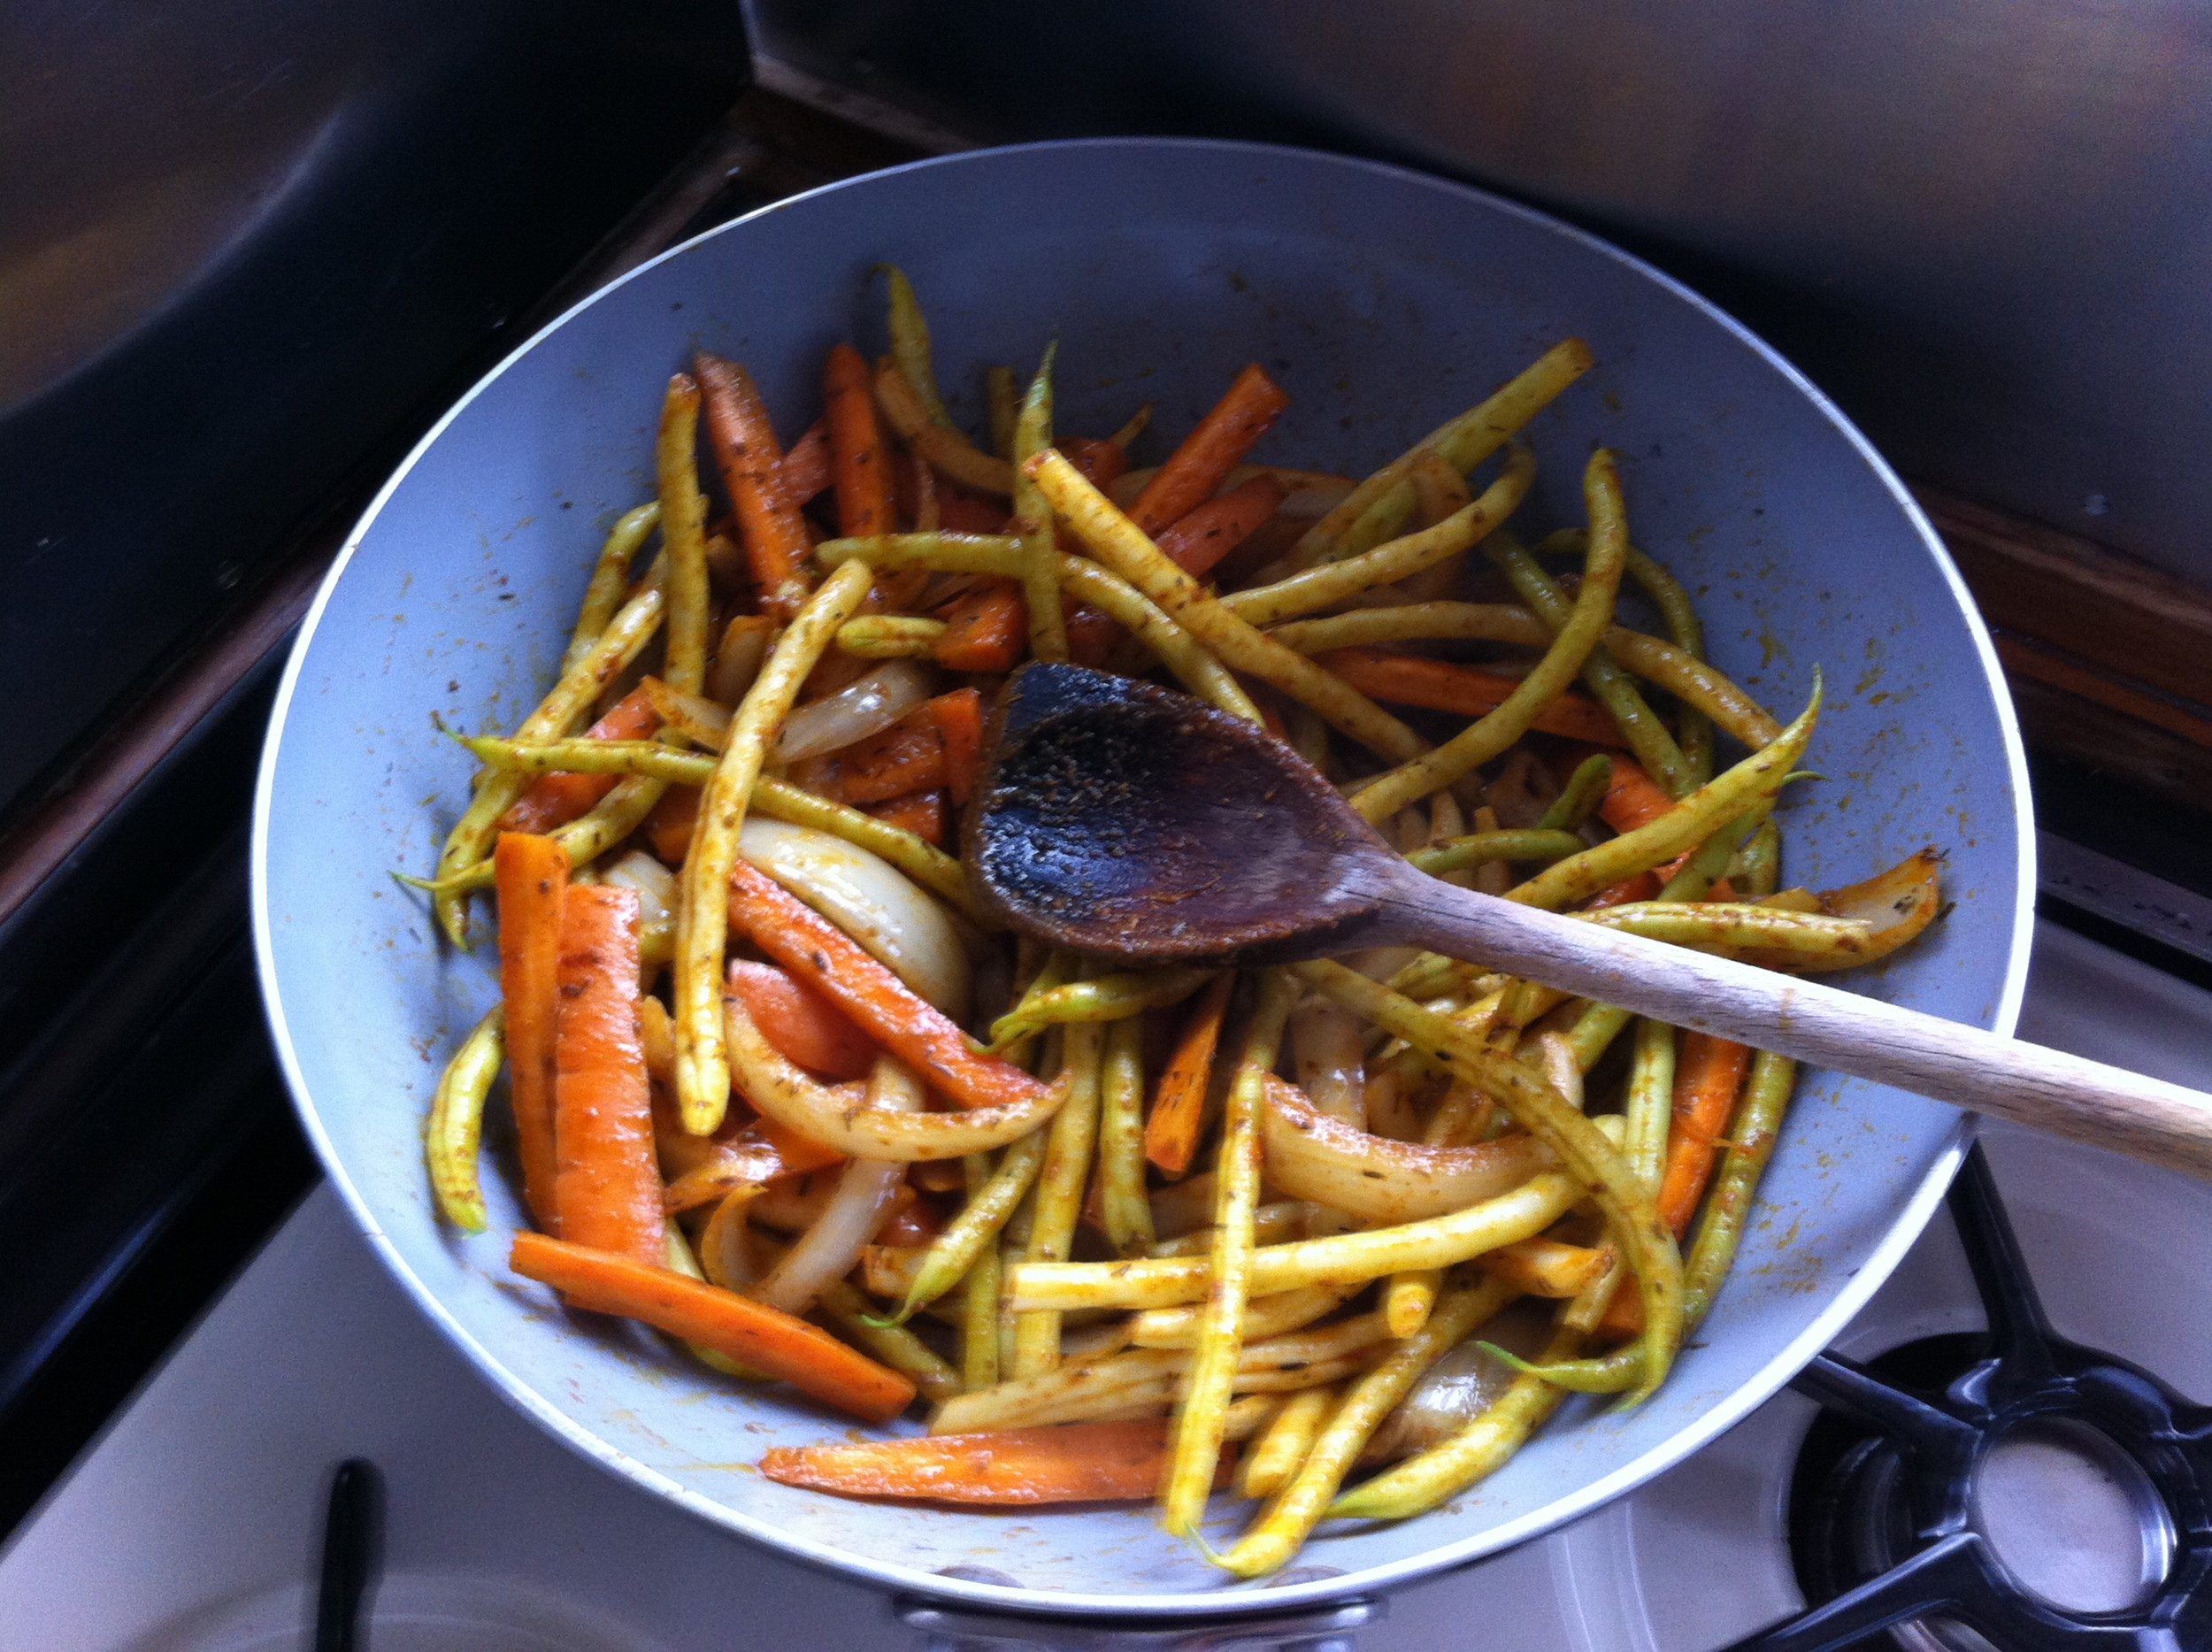 Jill's talent in the kitchen is never more apparent than when she whips up one of her delicious stir fries. Fresh veg from the garden, garlic, herbs and her secret ingredient (which she uses in almost everything) No Frills curry powder.